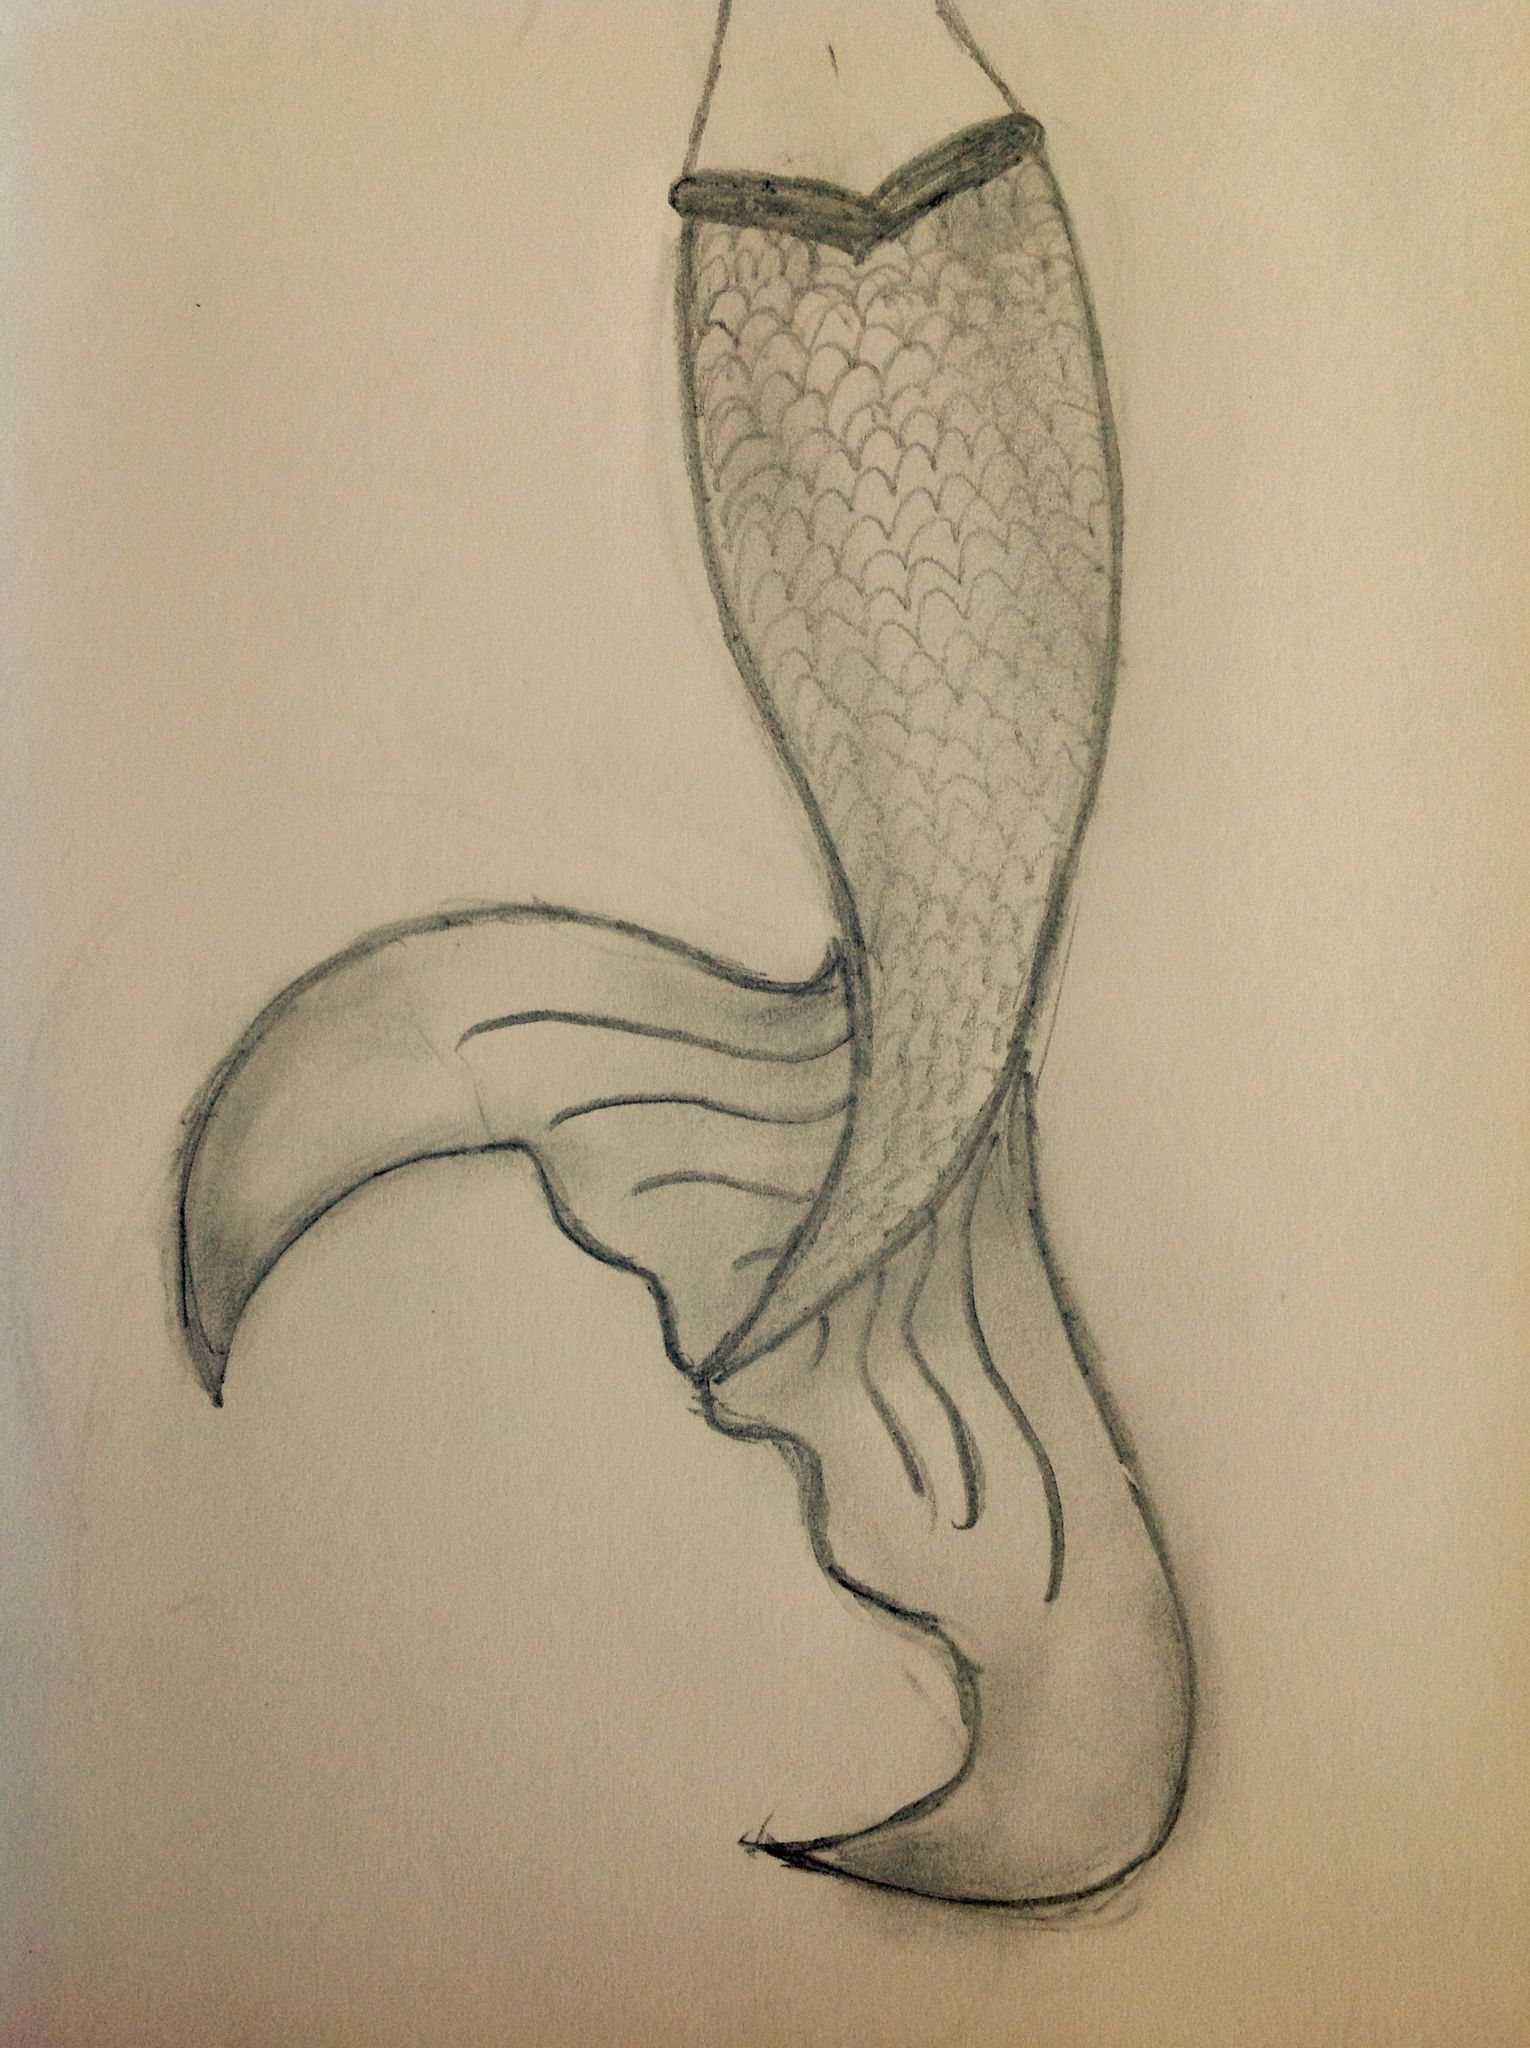 Uncategorized Easy Mermaids To Draw a simple easy mermaid tail drawing that looks 10 times better with shading